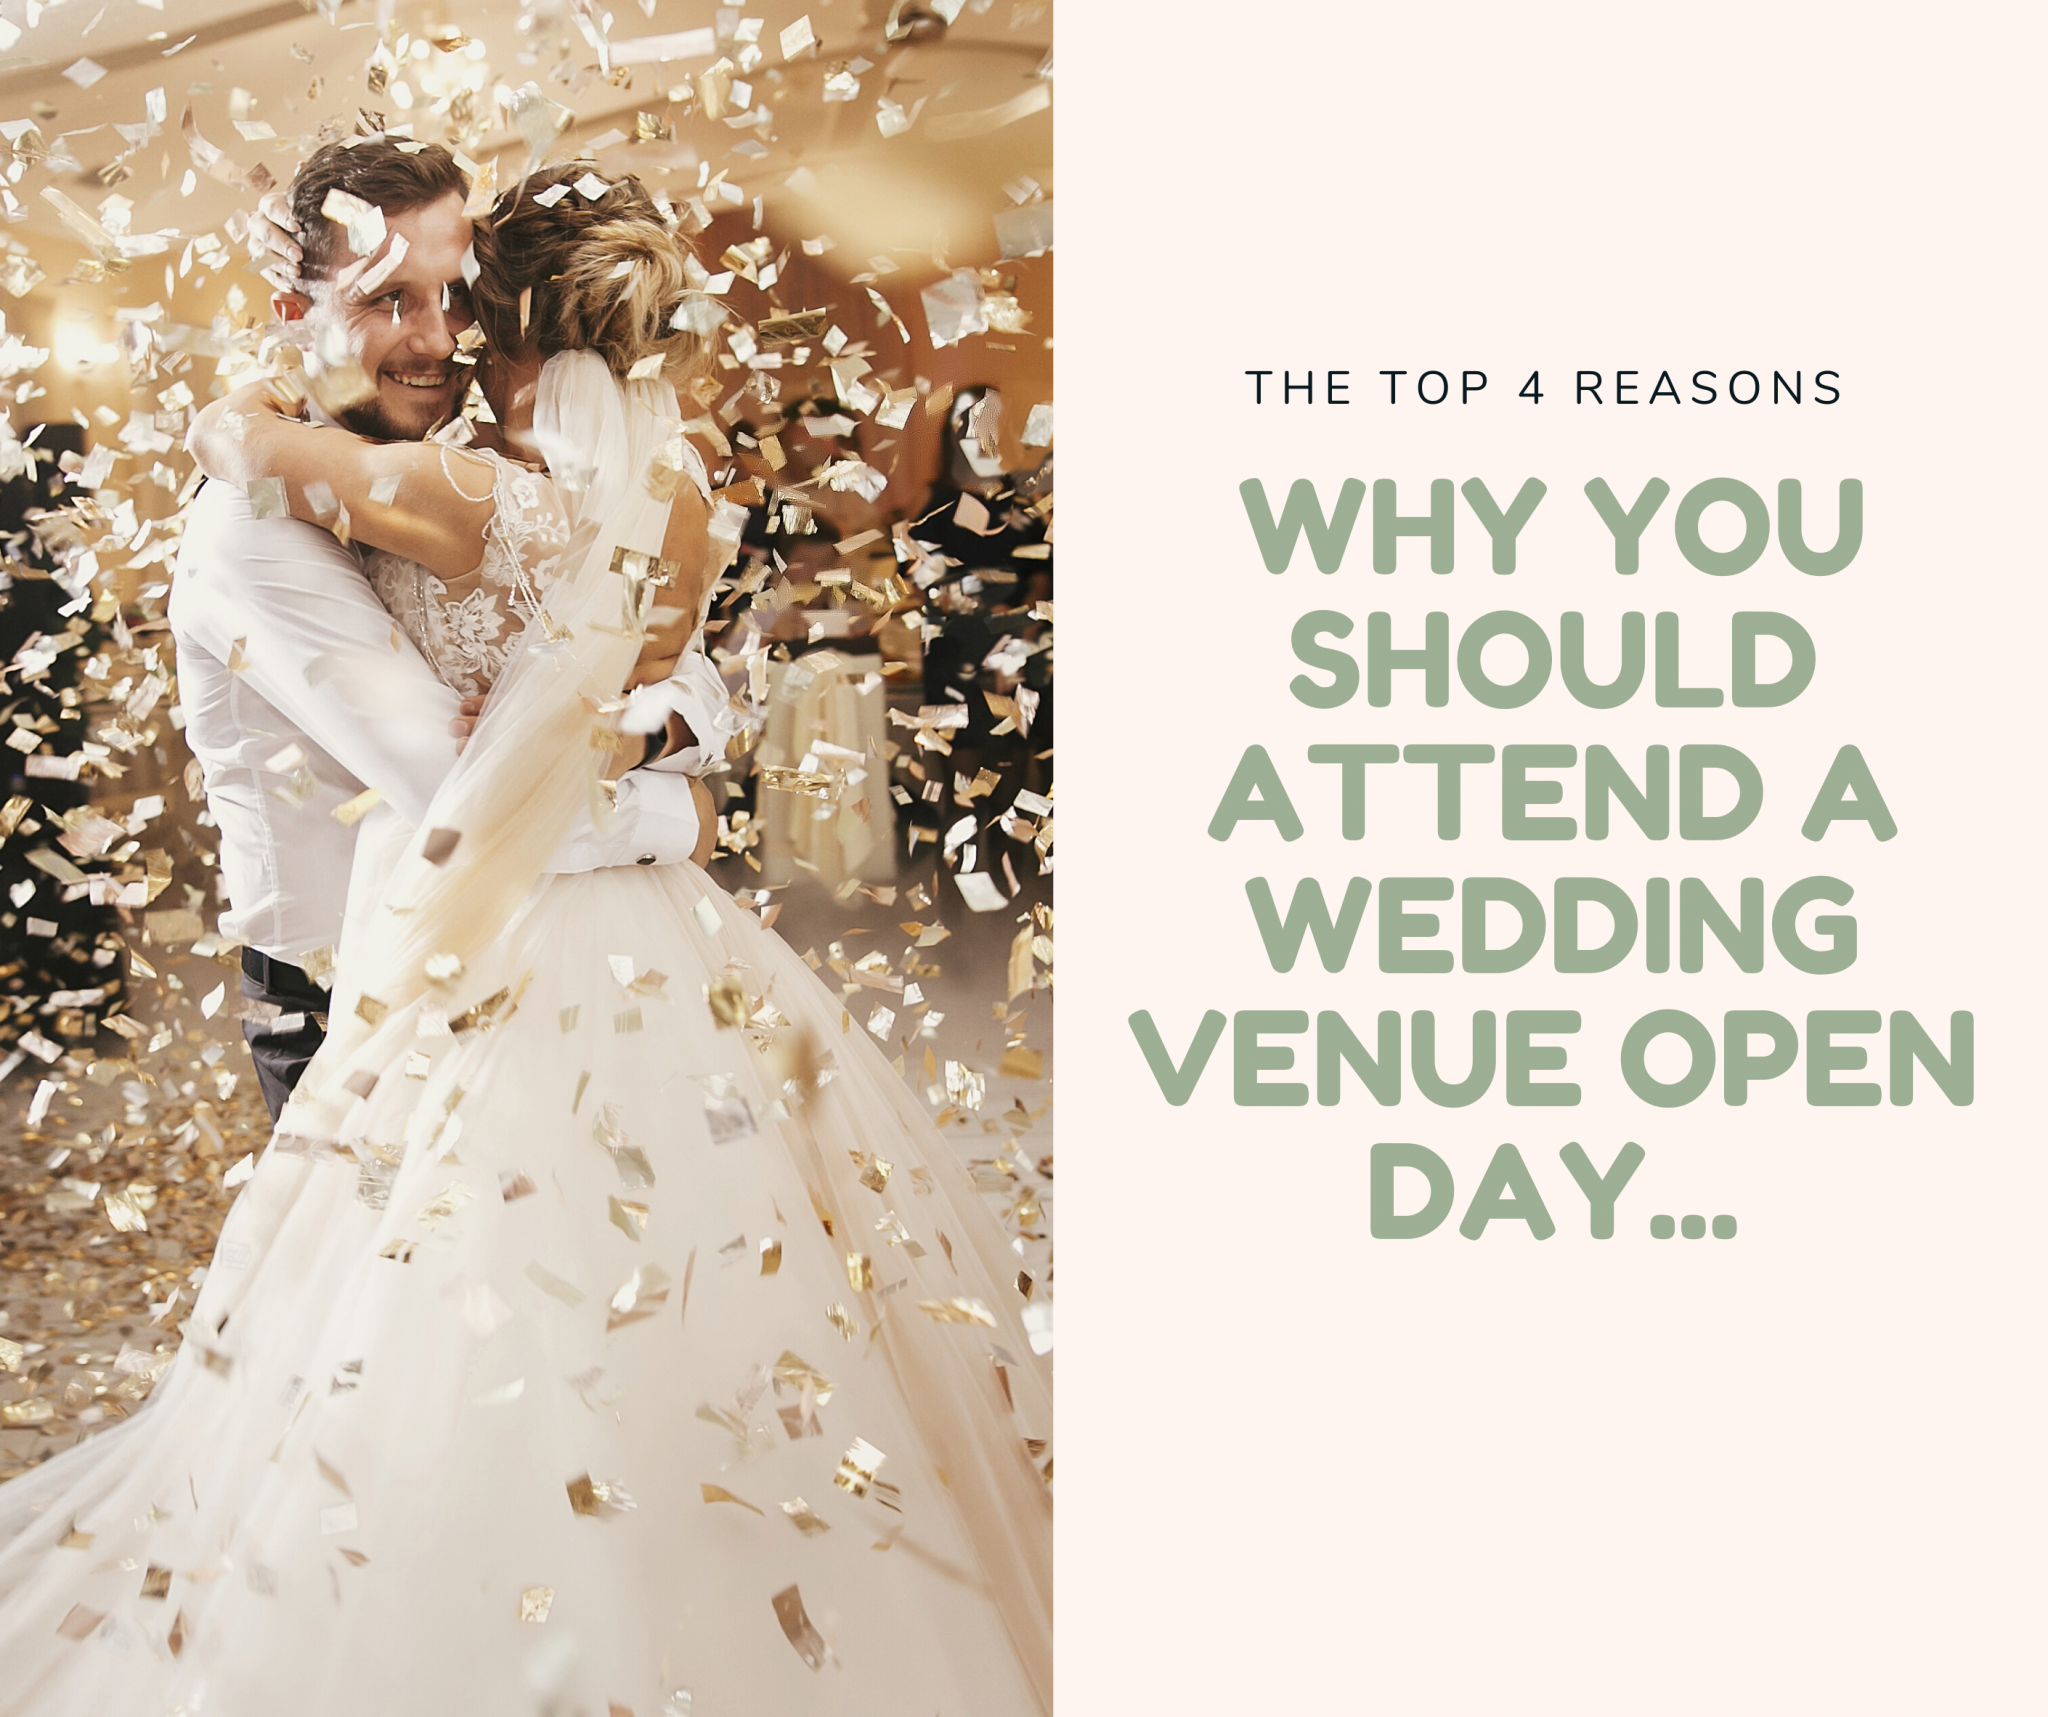 Why you should attend a wedding venue open day...